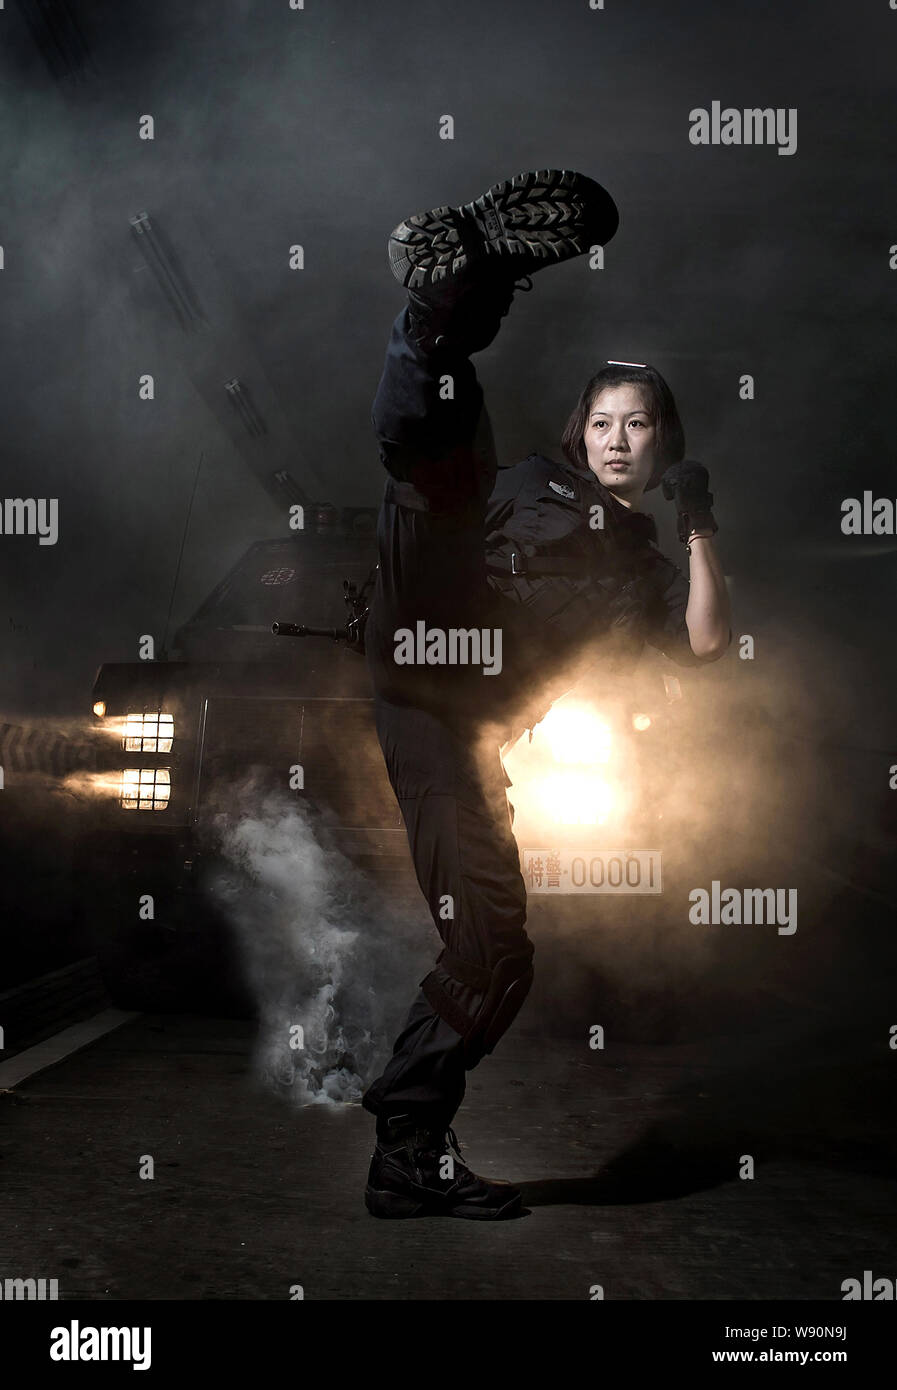 A Female Swat Police Officer Armed With A Gun Poses For Recruitment Posters To Attract New Recruits In Chengdu City Southwest Chinas Sichuan Province Stock Photo Alamy